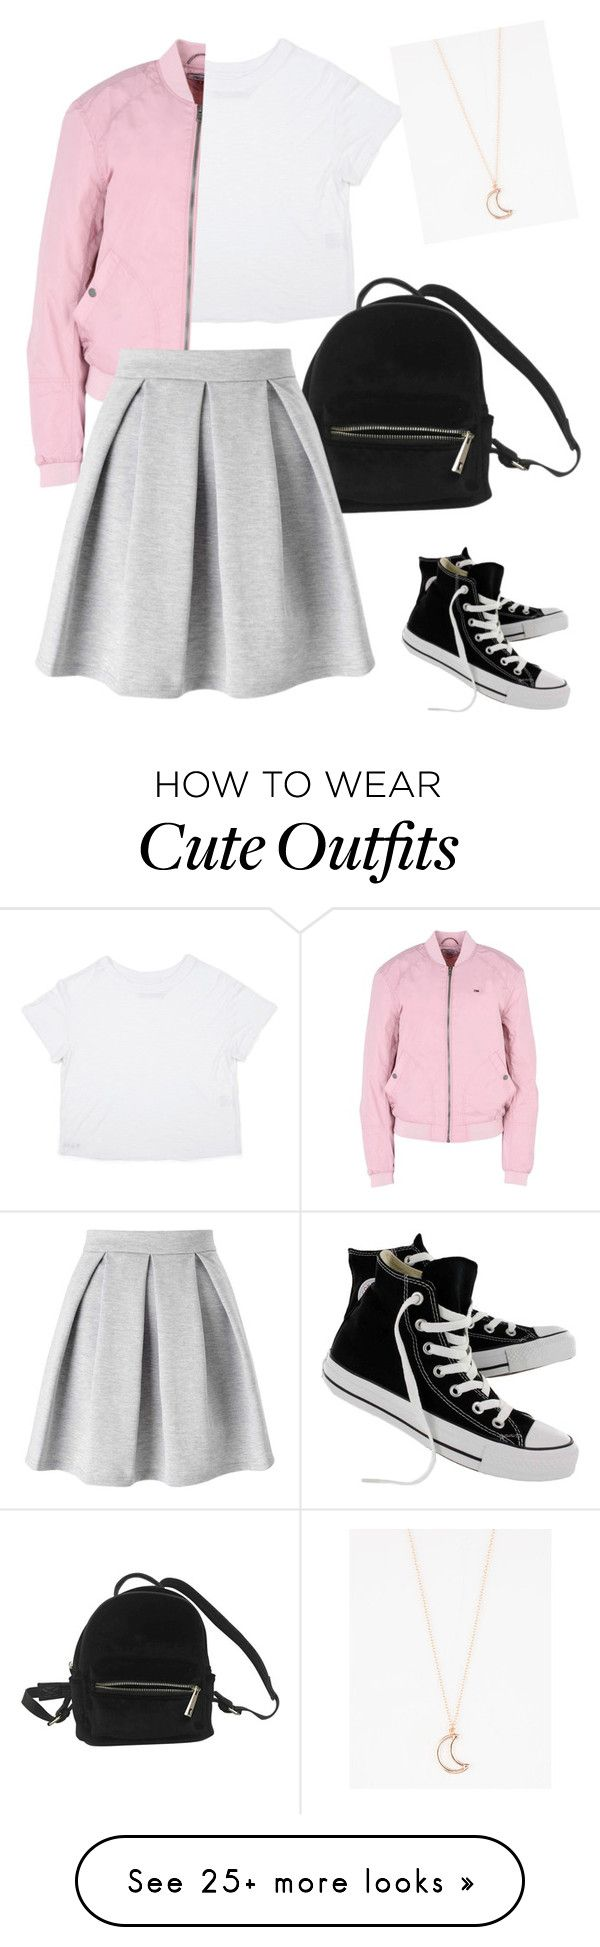 """""""Simple & Cute"""" by keana-browne on Polyvore featuring Converse, Urban Outfitters, Hilfiger Denim, Miss Selfridge and Full Tilt"""